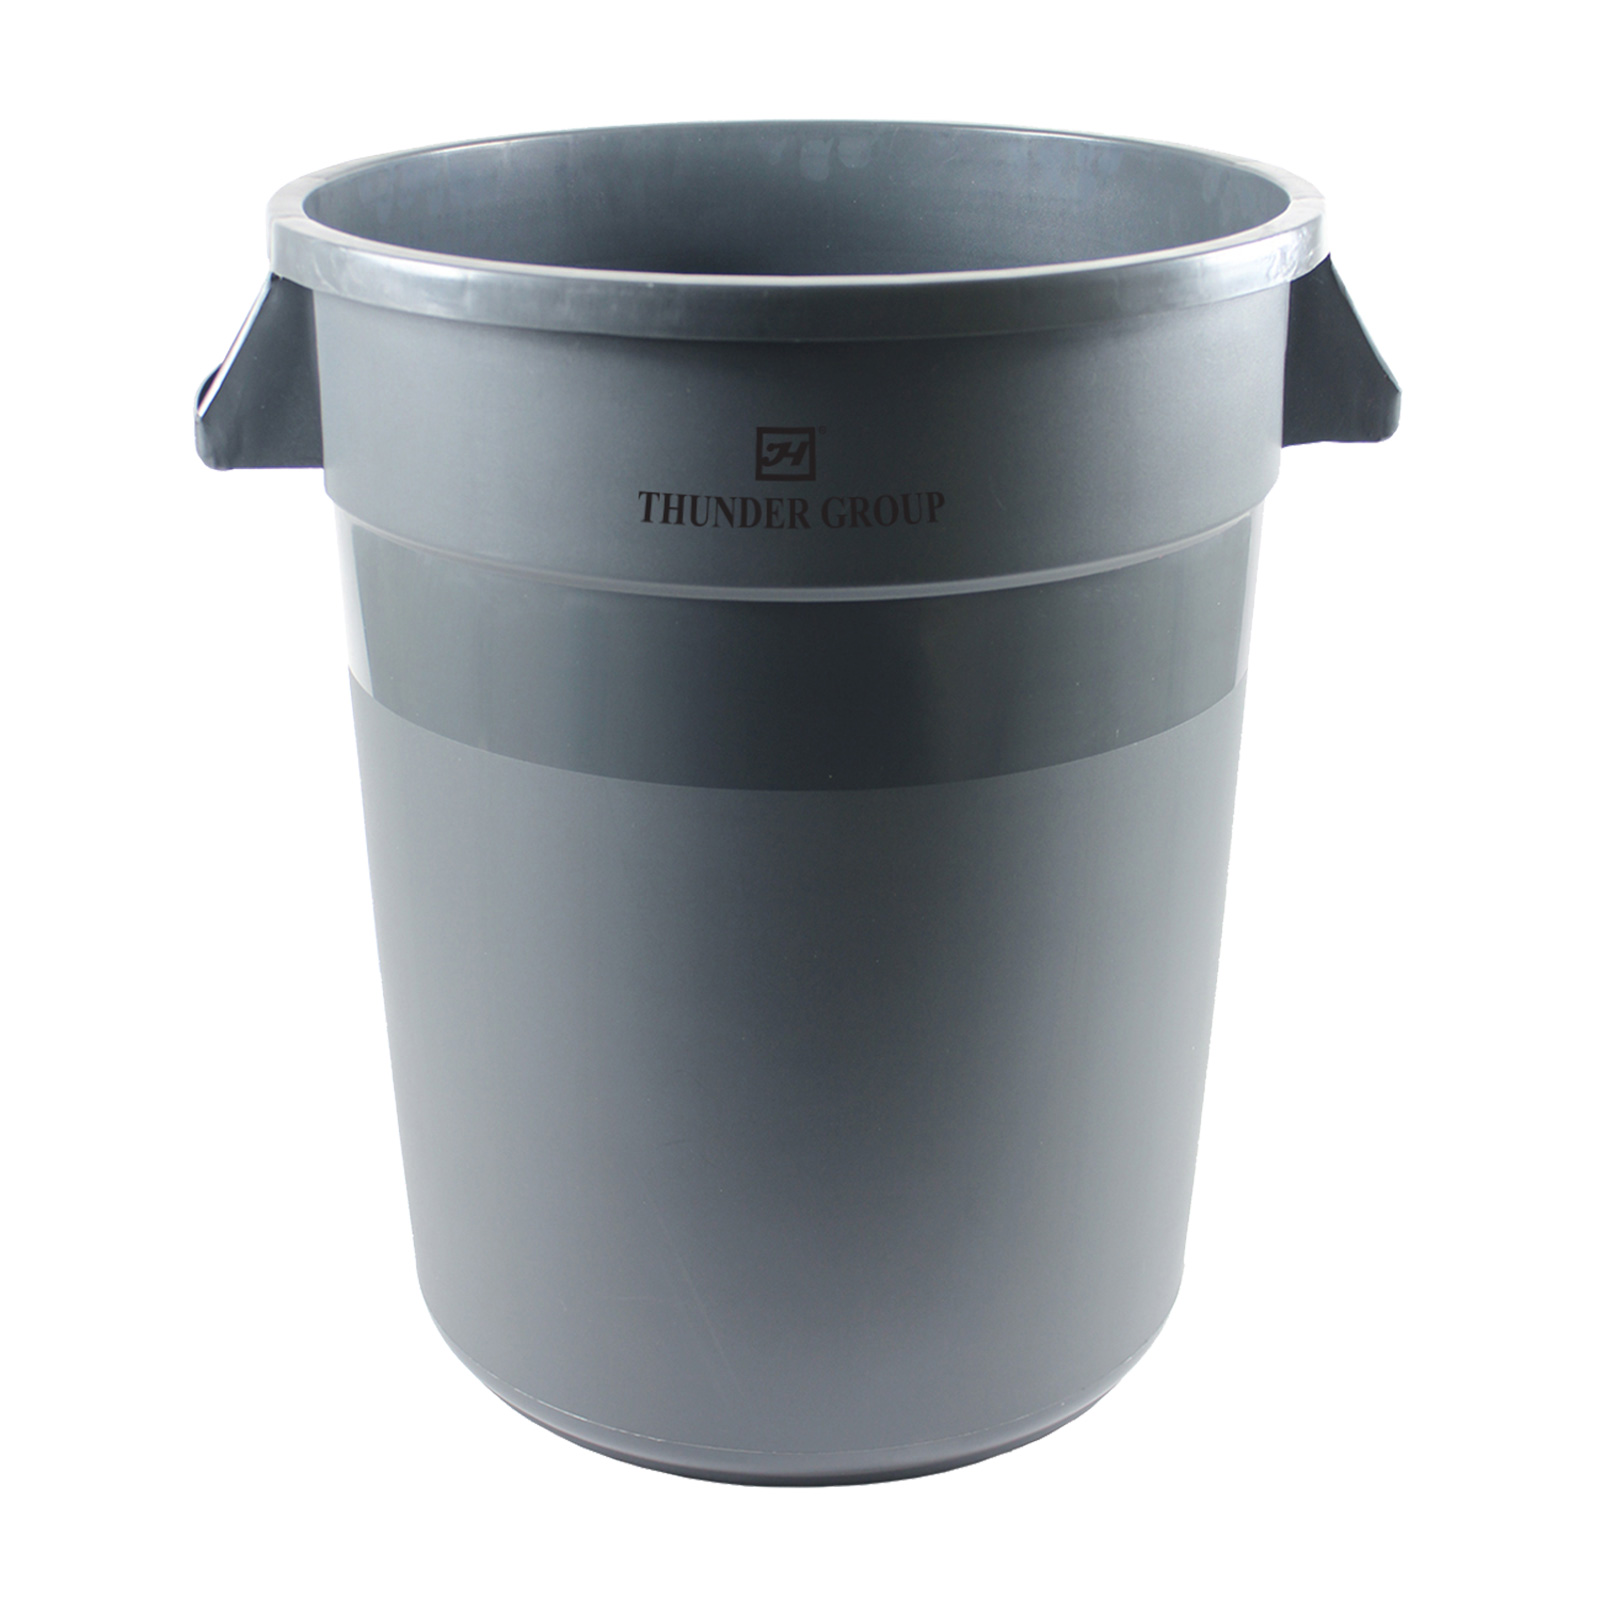 Thunder Group PLTC020G trash can / container, commercial